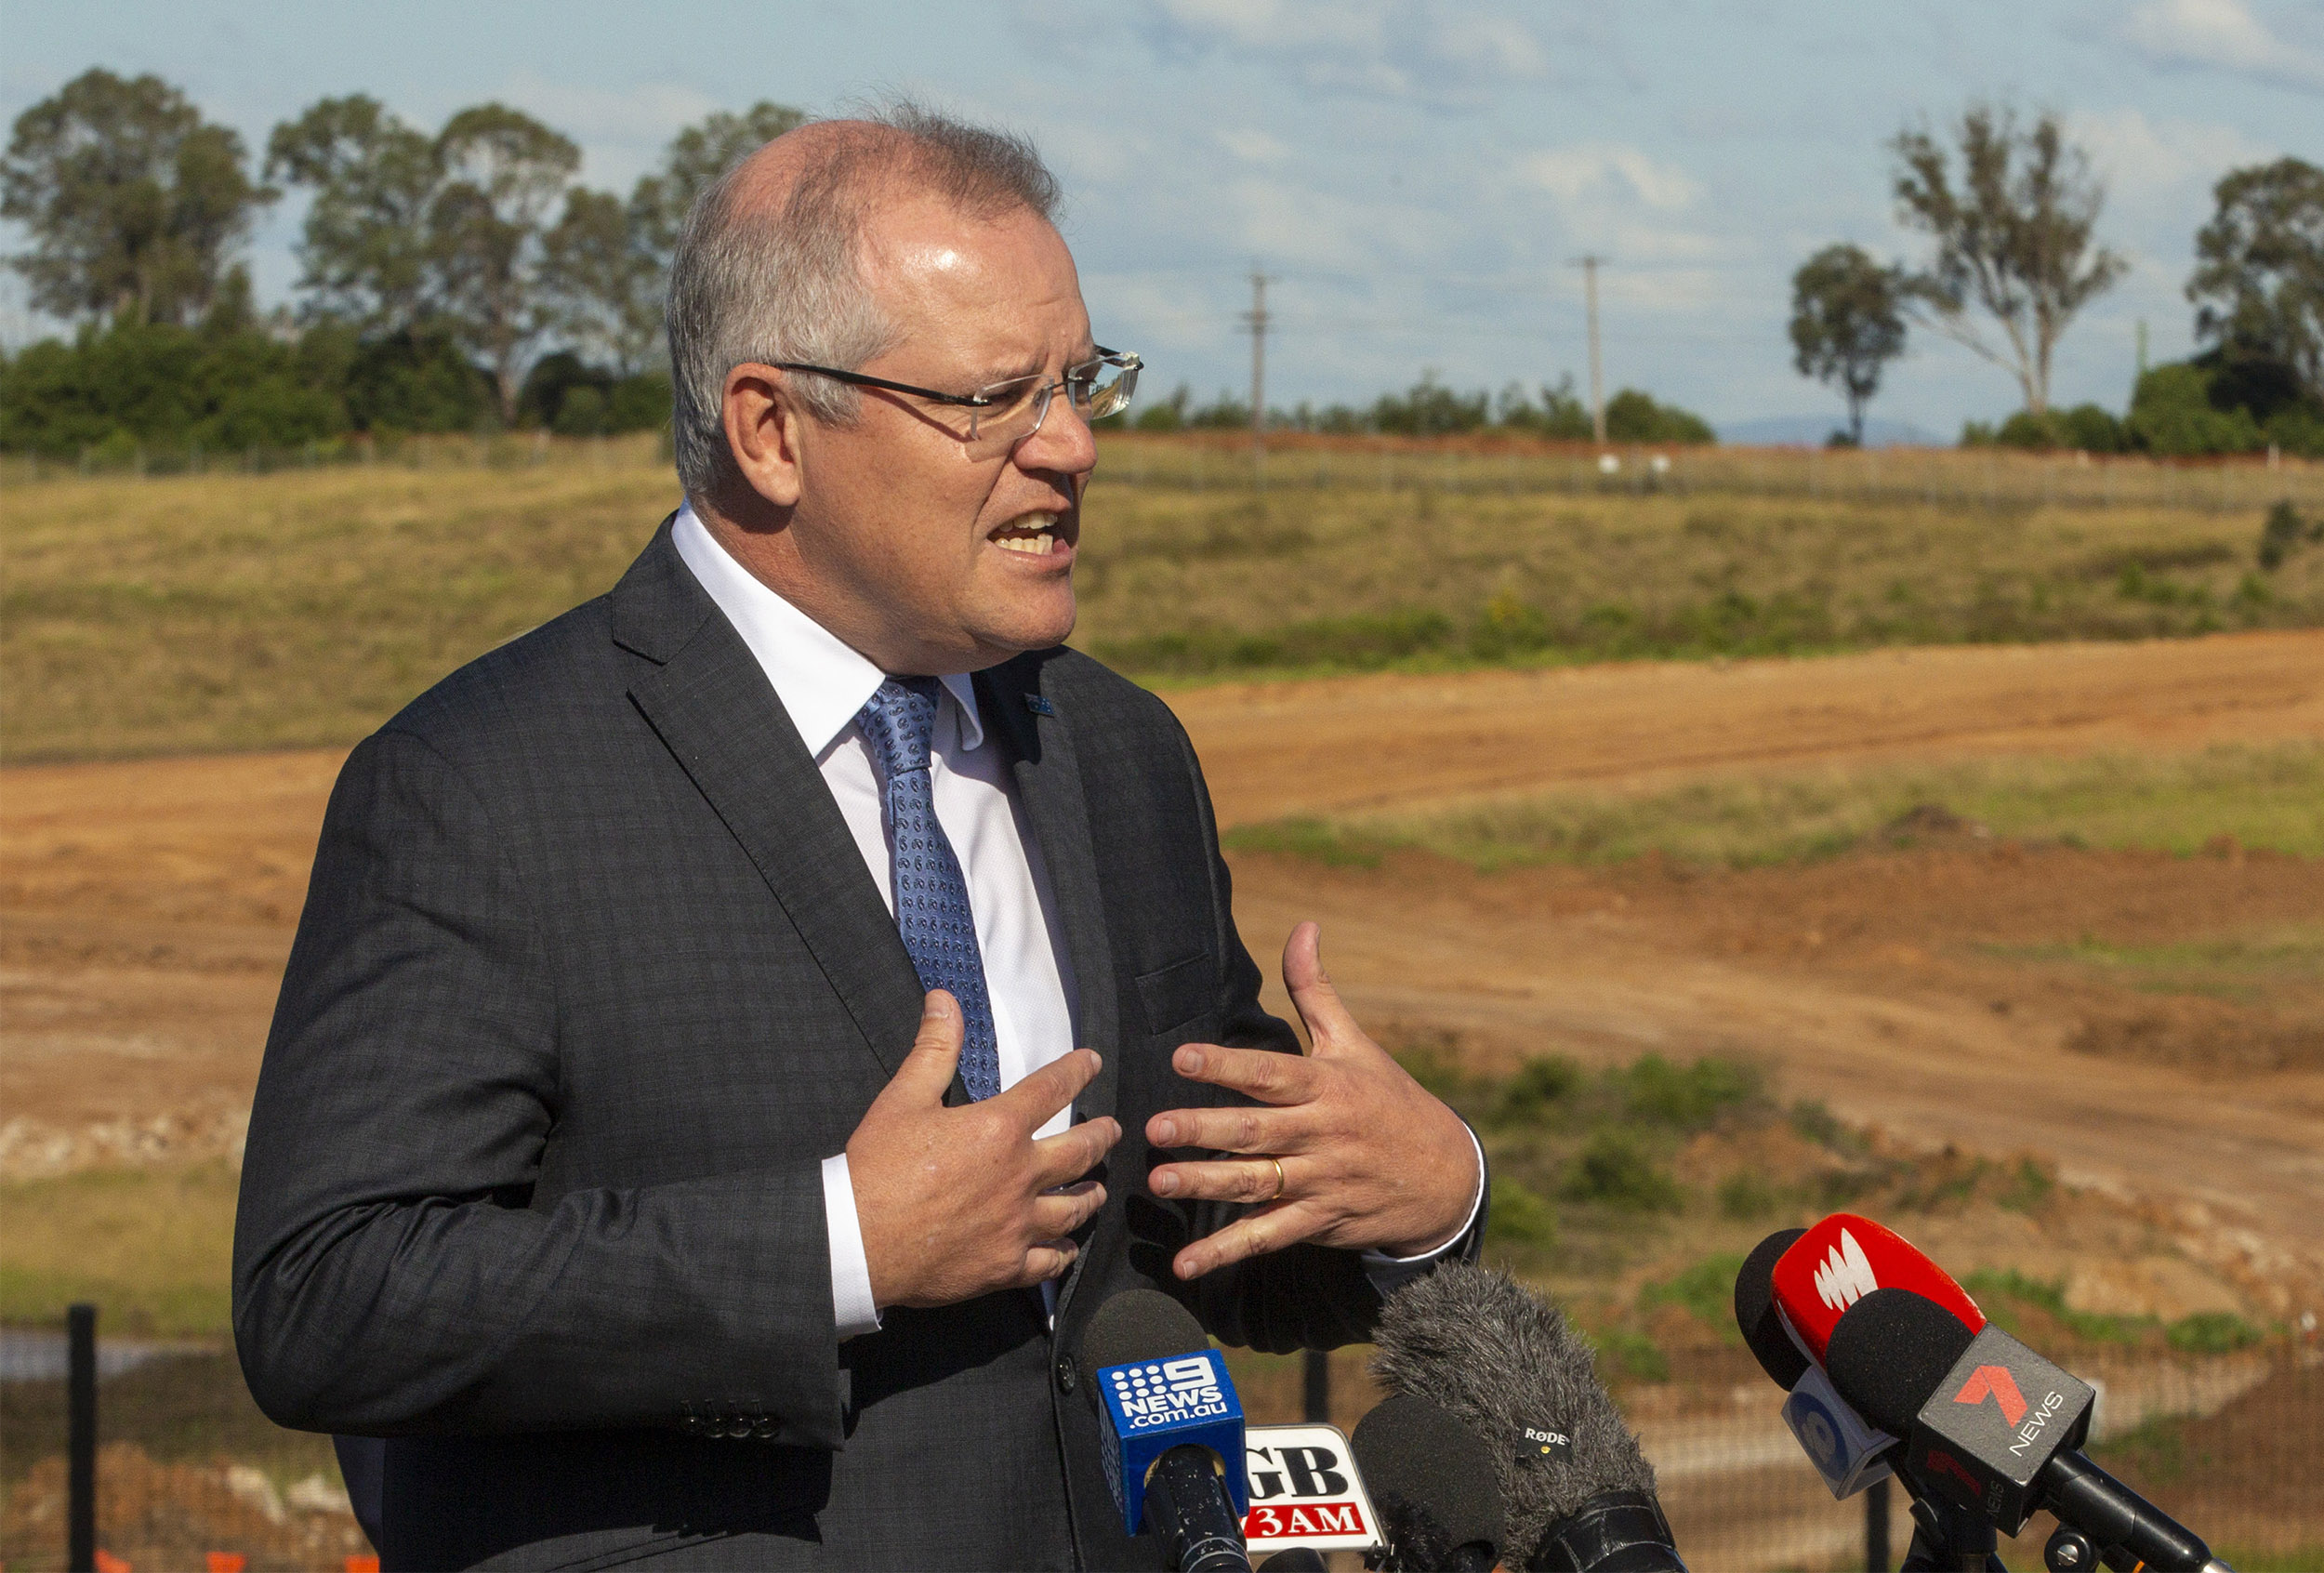 Australian Prime Minister Scott Morrison talks during a press conference at the Western Sydney International Airport Experience Centre in Sydney, Australia, on June 1.